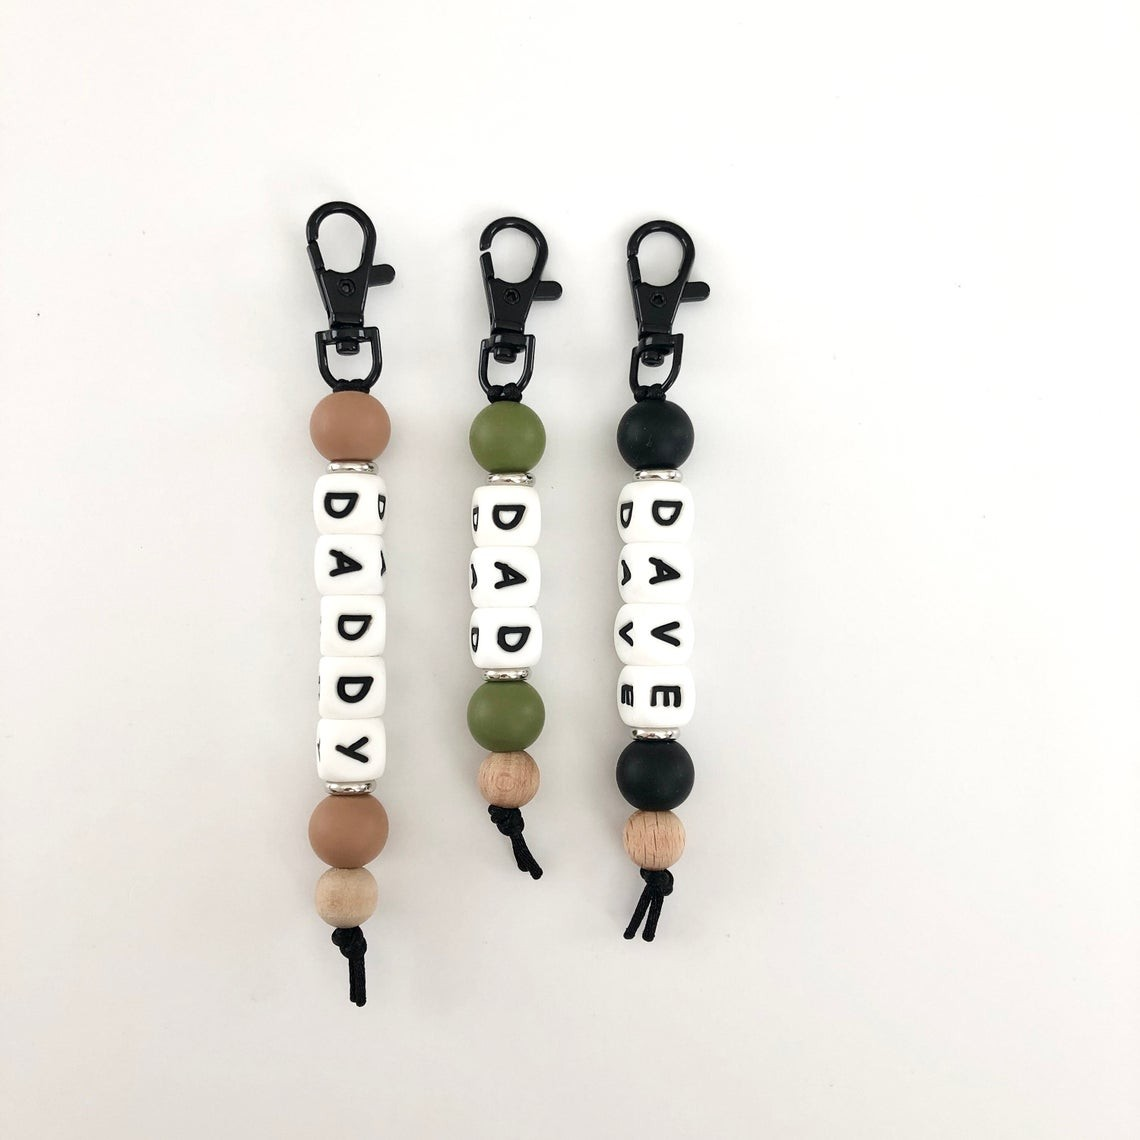 Personalized Luggage Name Tag Keychain with Engraving Beads